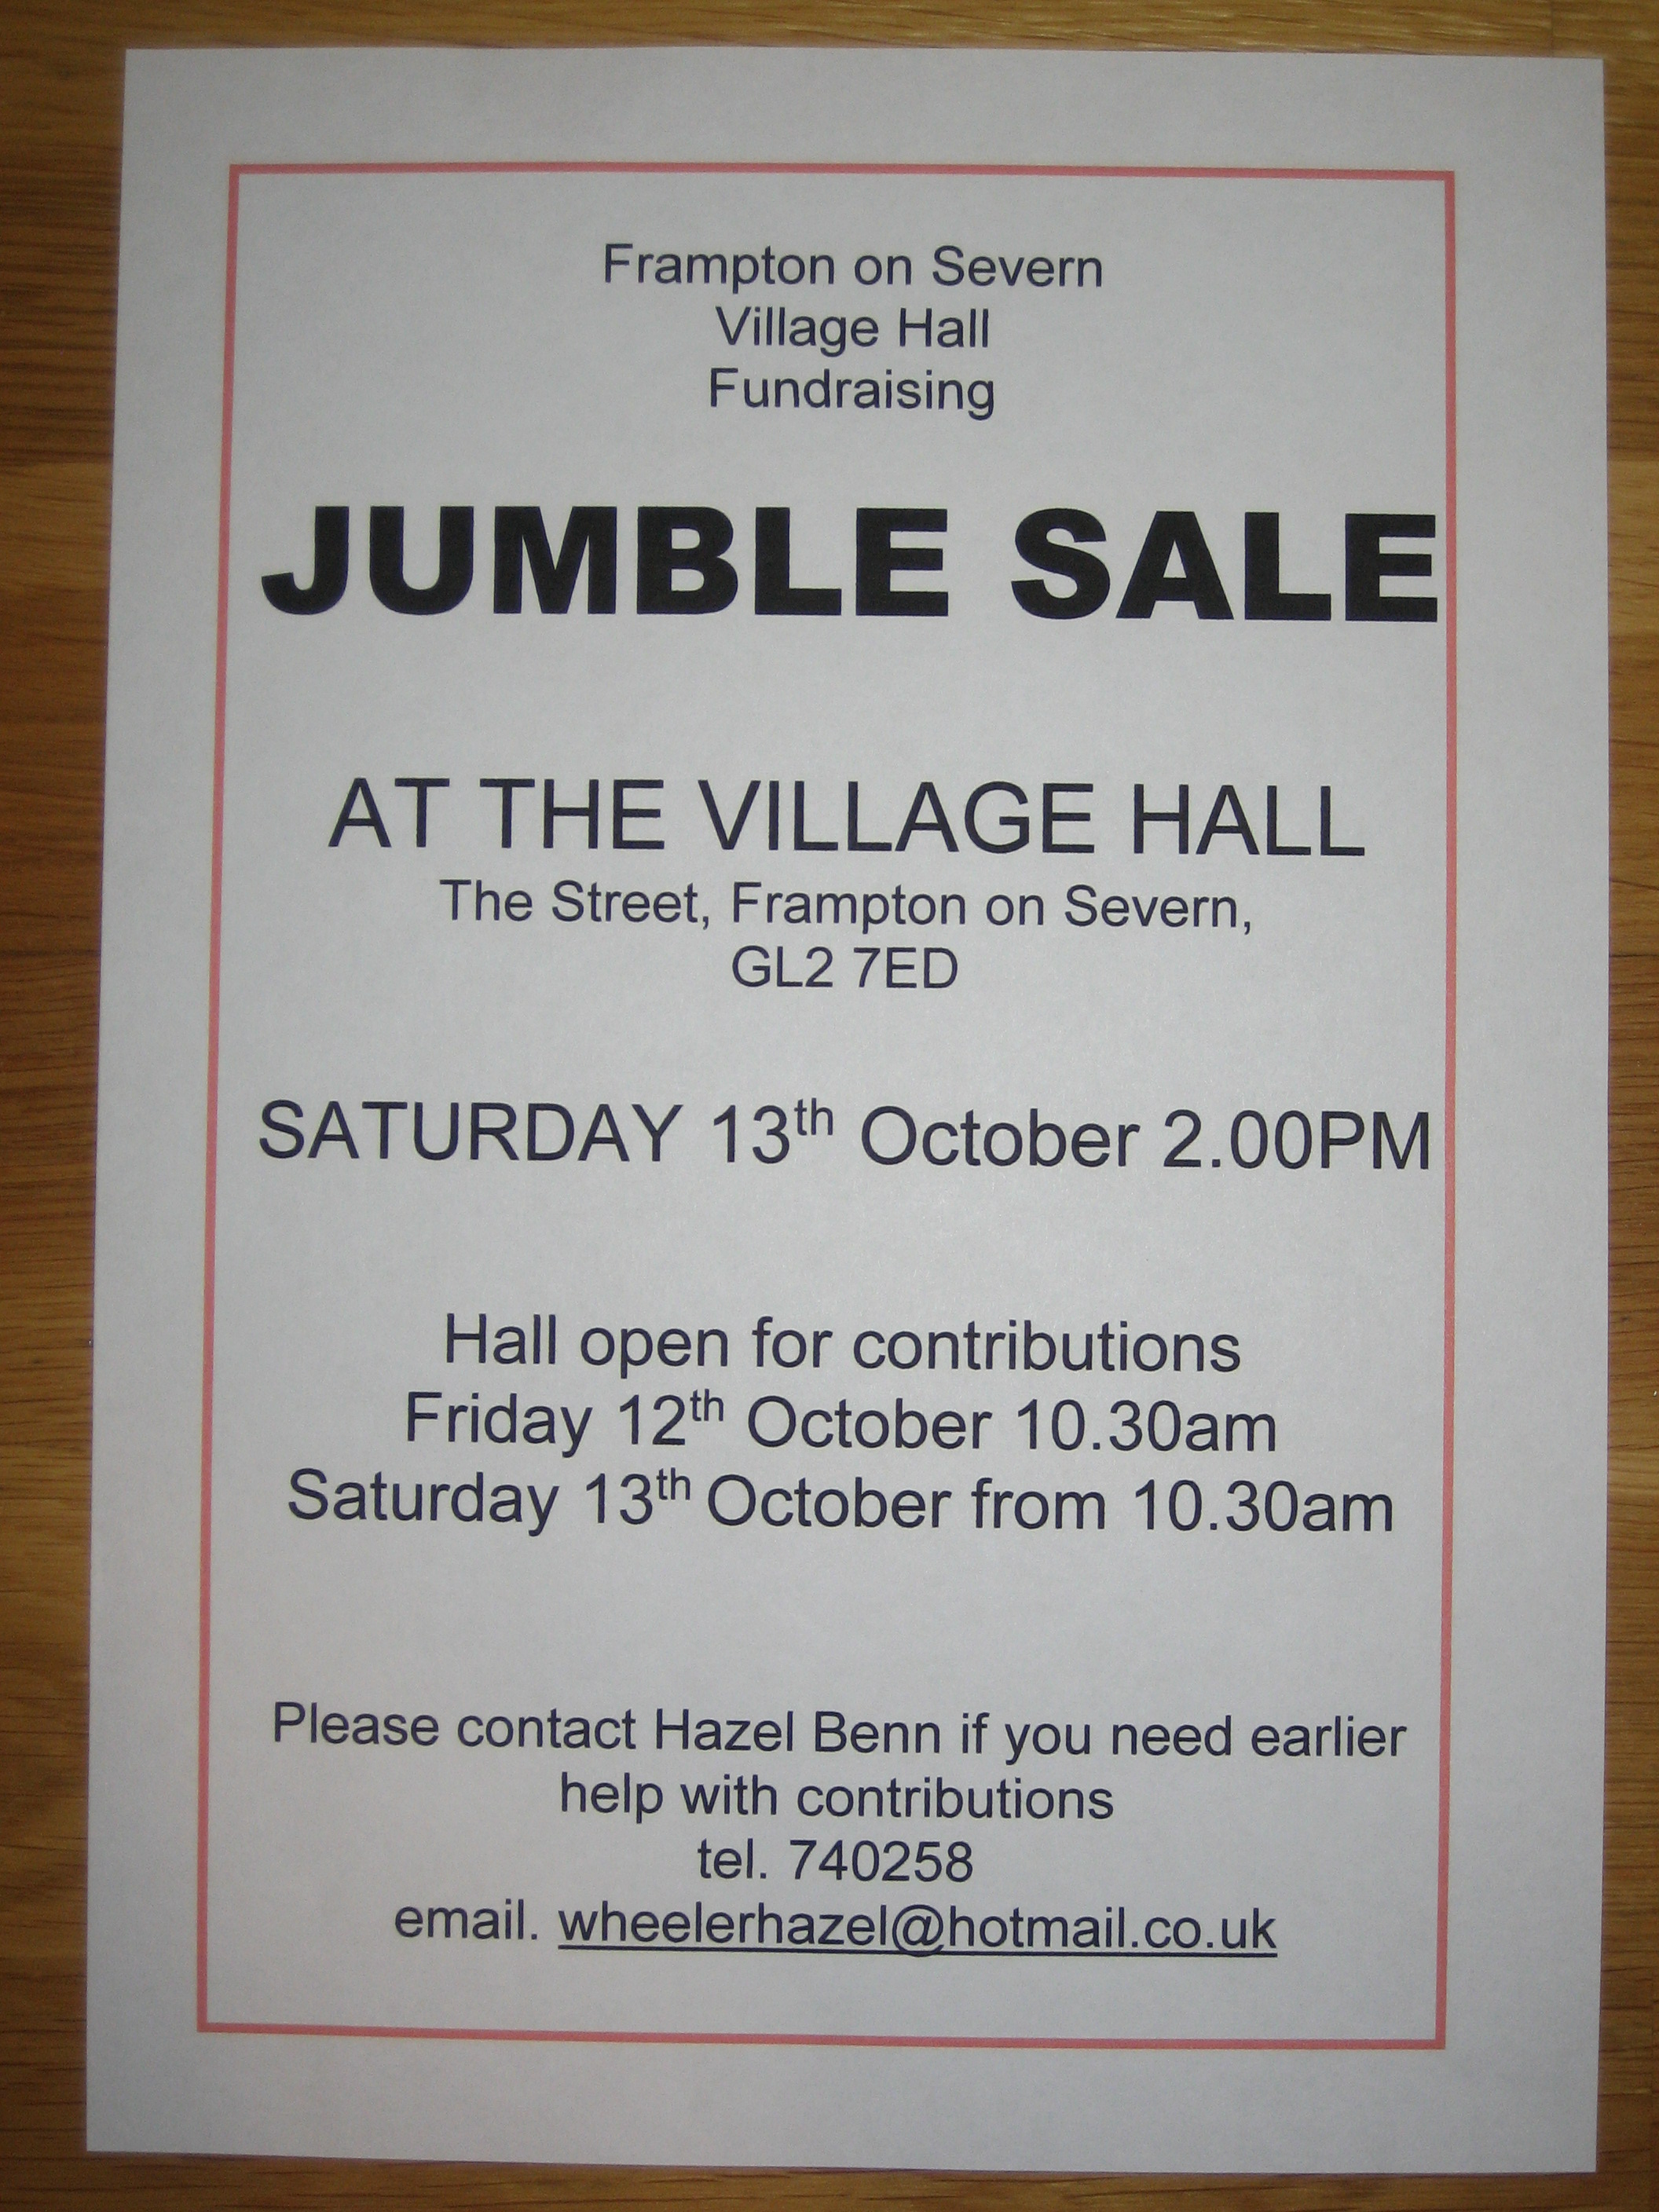 Jumble Sale Frampton on Severn 13th October 2018 2pm